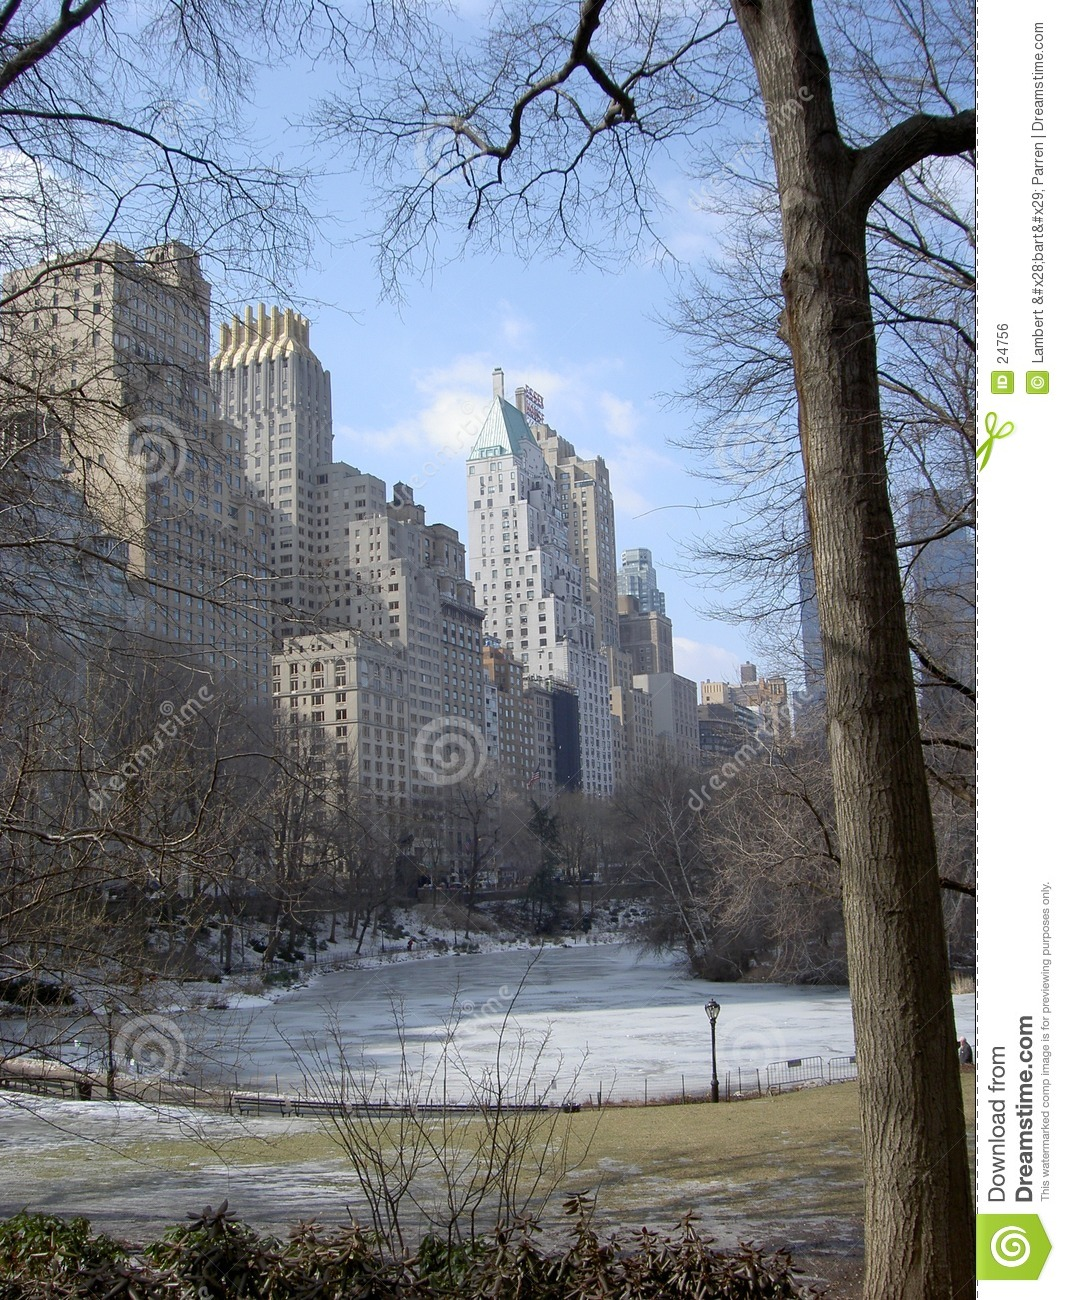 NYC Central Park in inverno